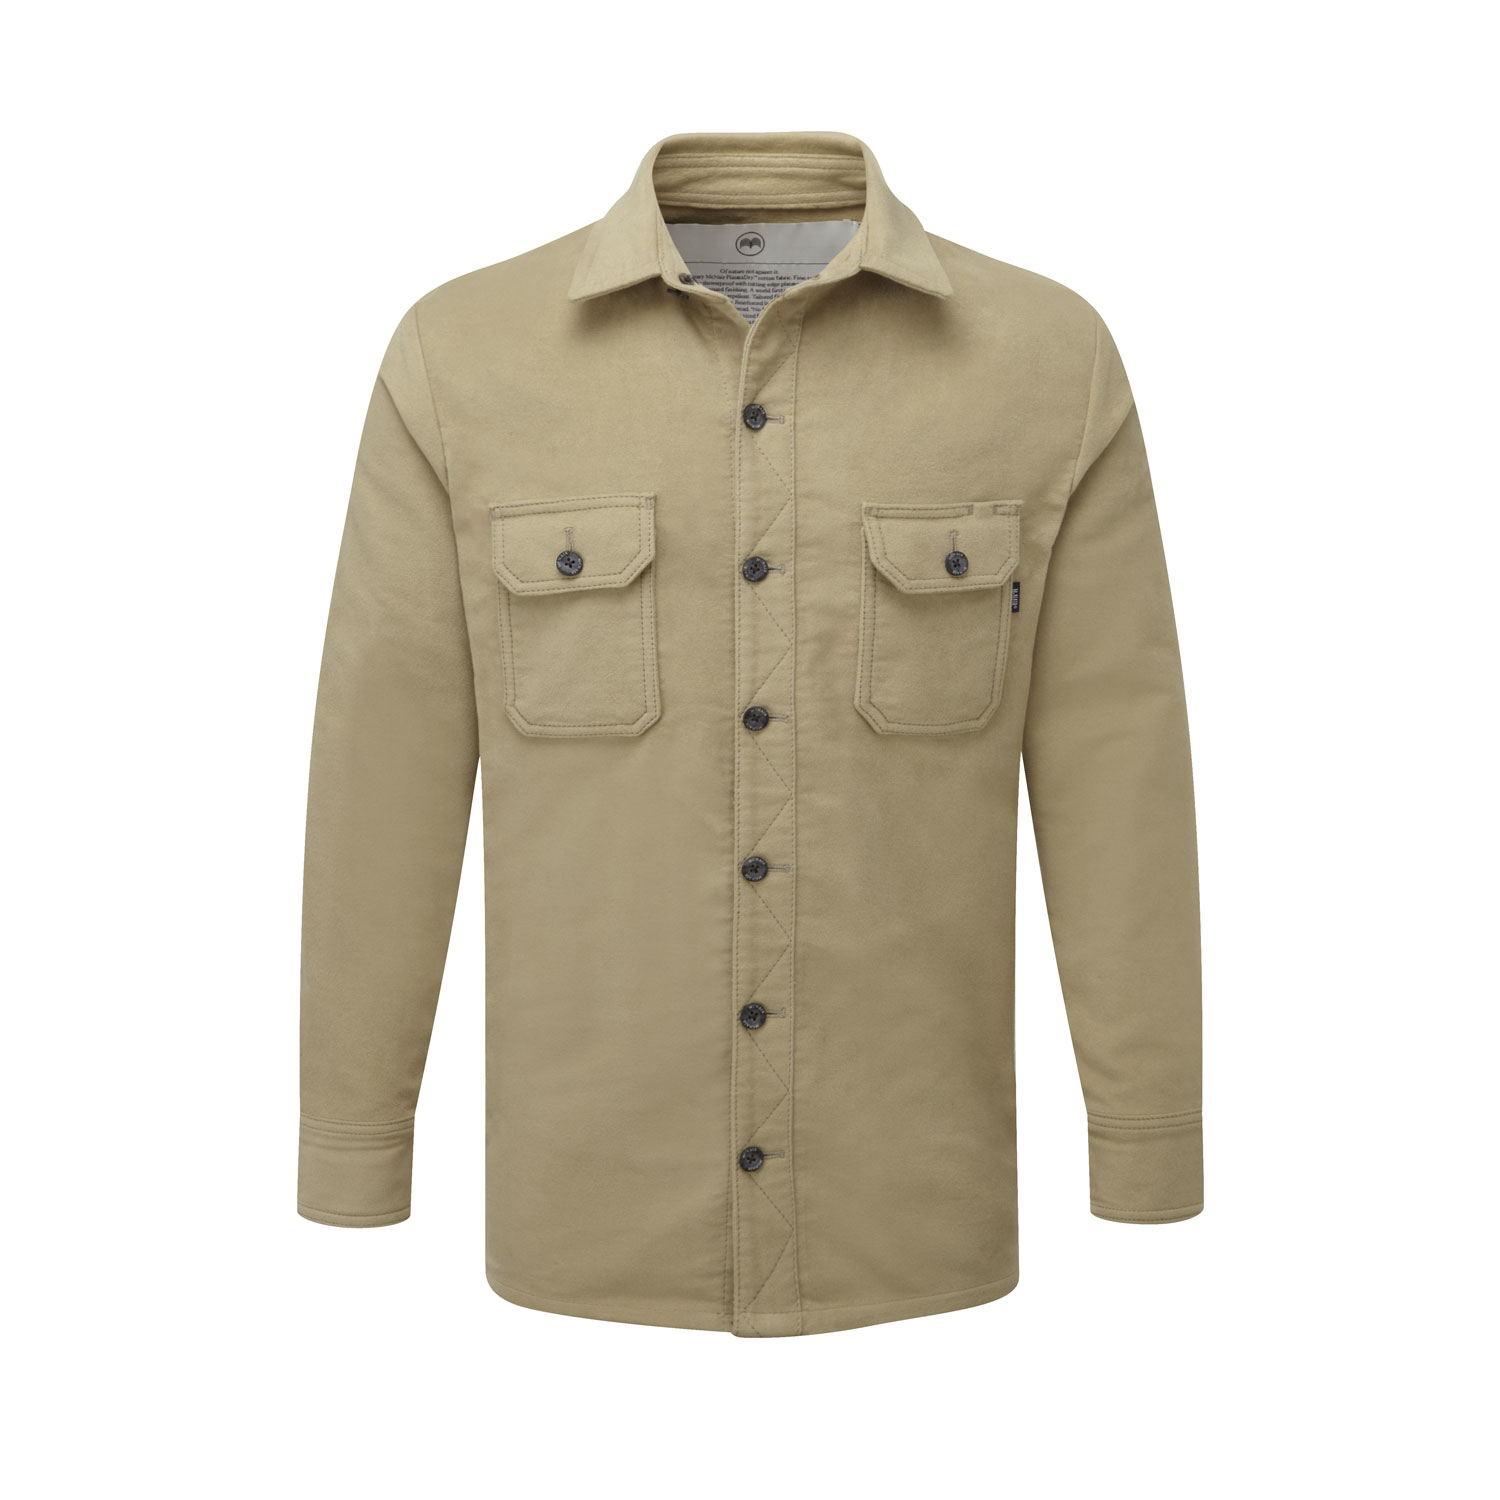 McNair Men's PlasmaDry Moleskin shirt in light khaki